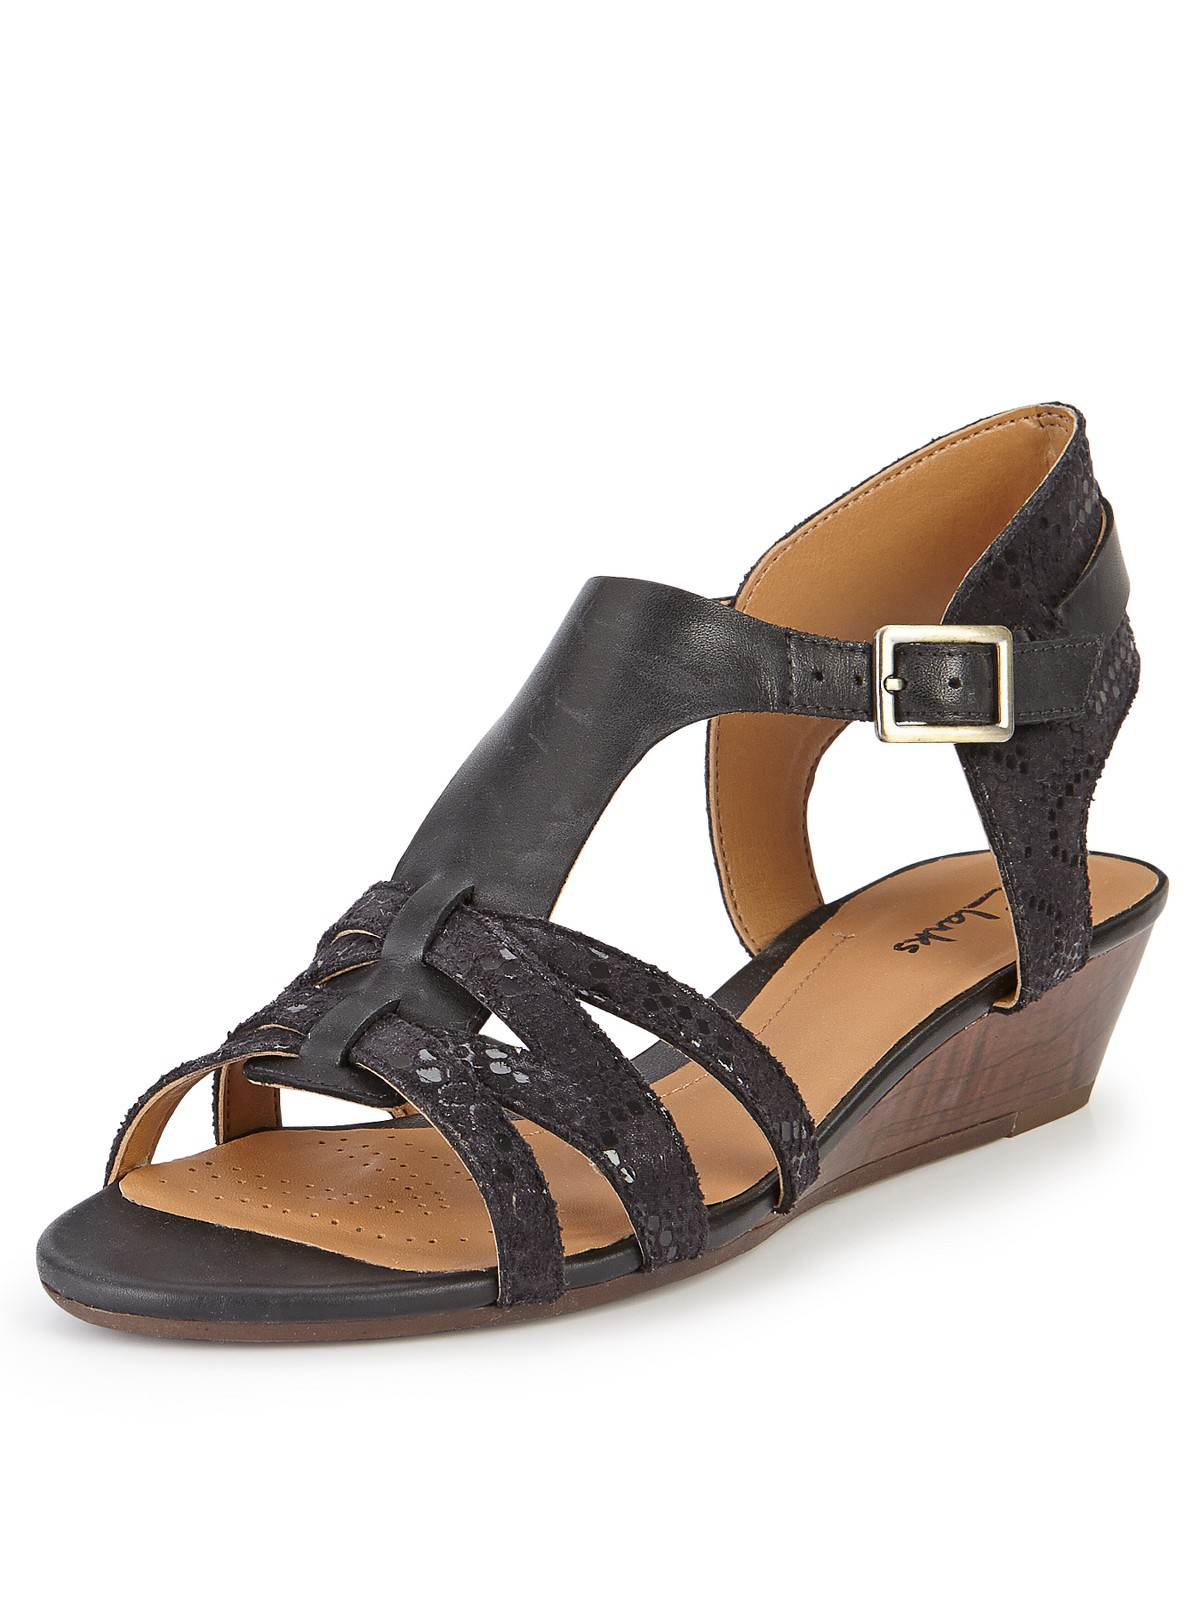 Clarks Playful Club Low Wedge Sandals In Black Black